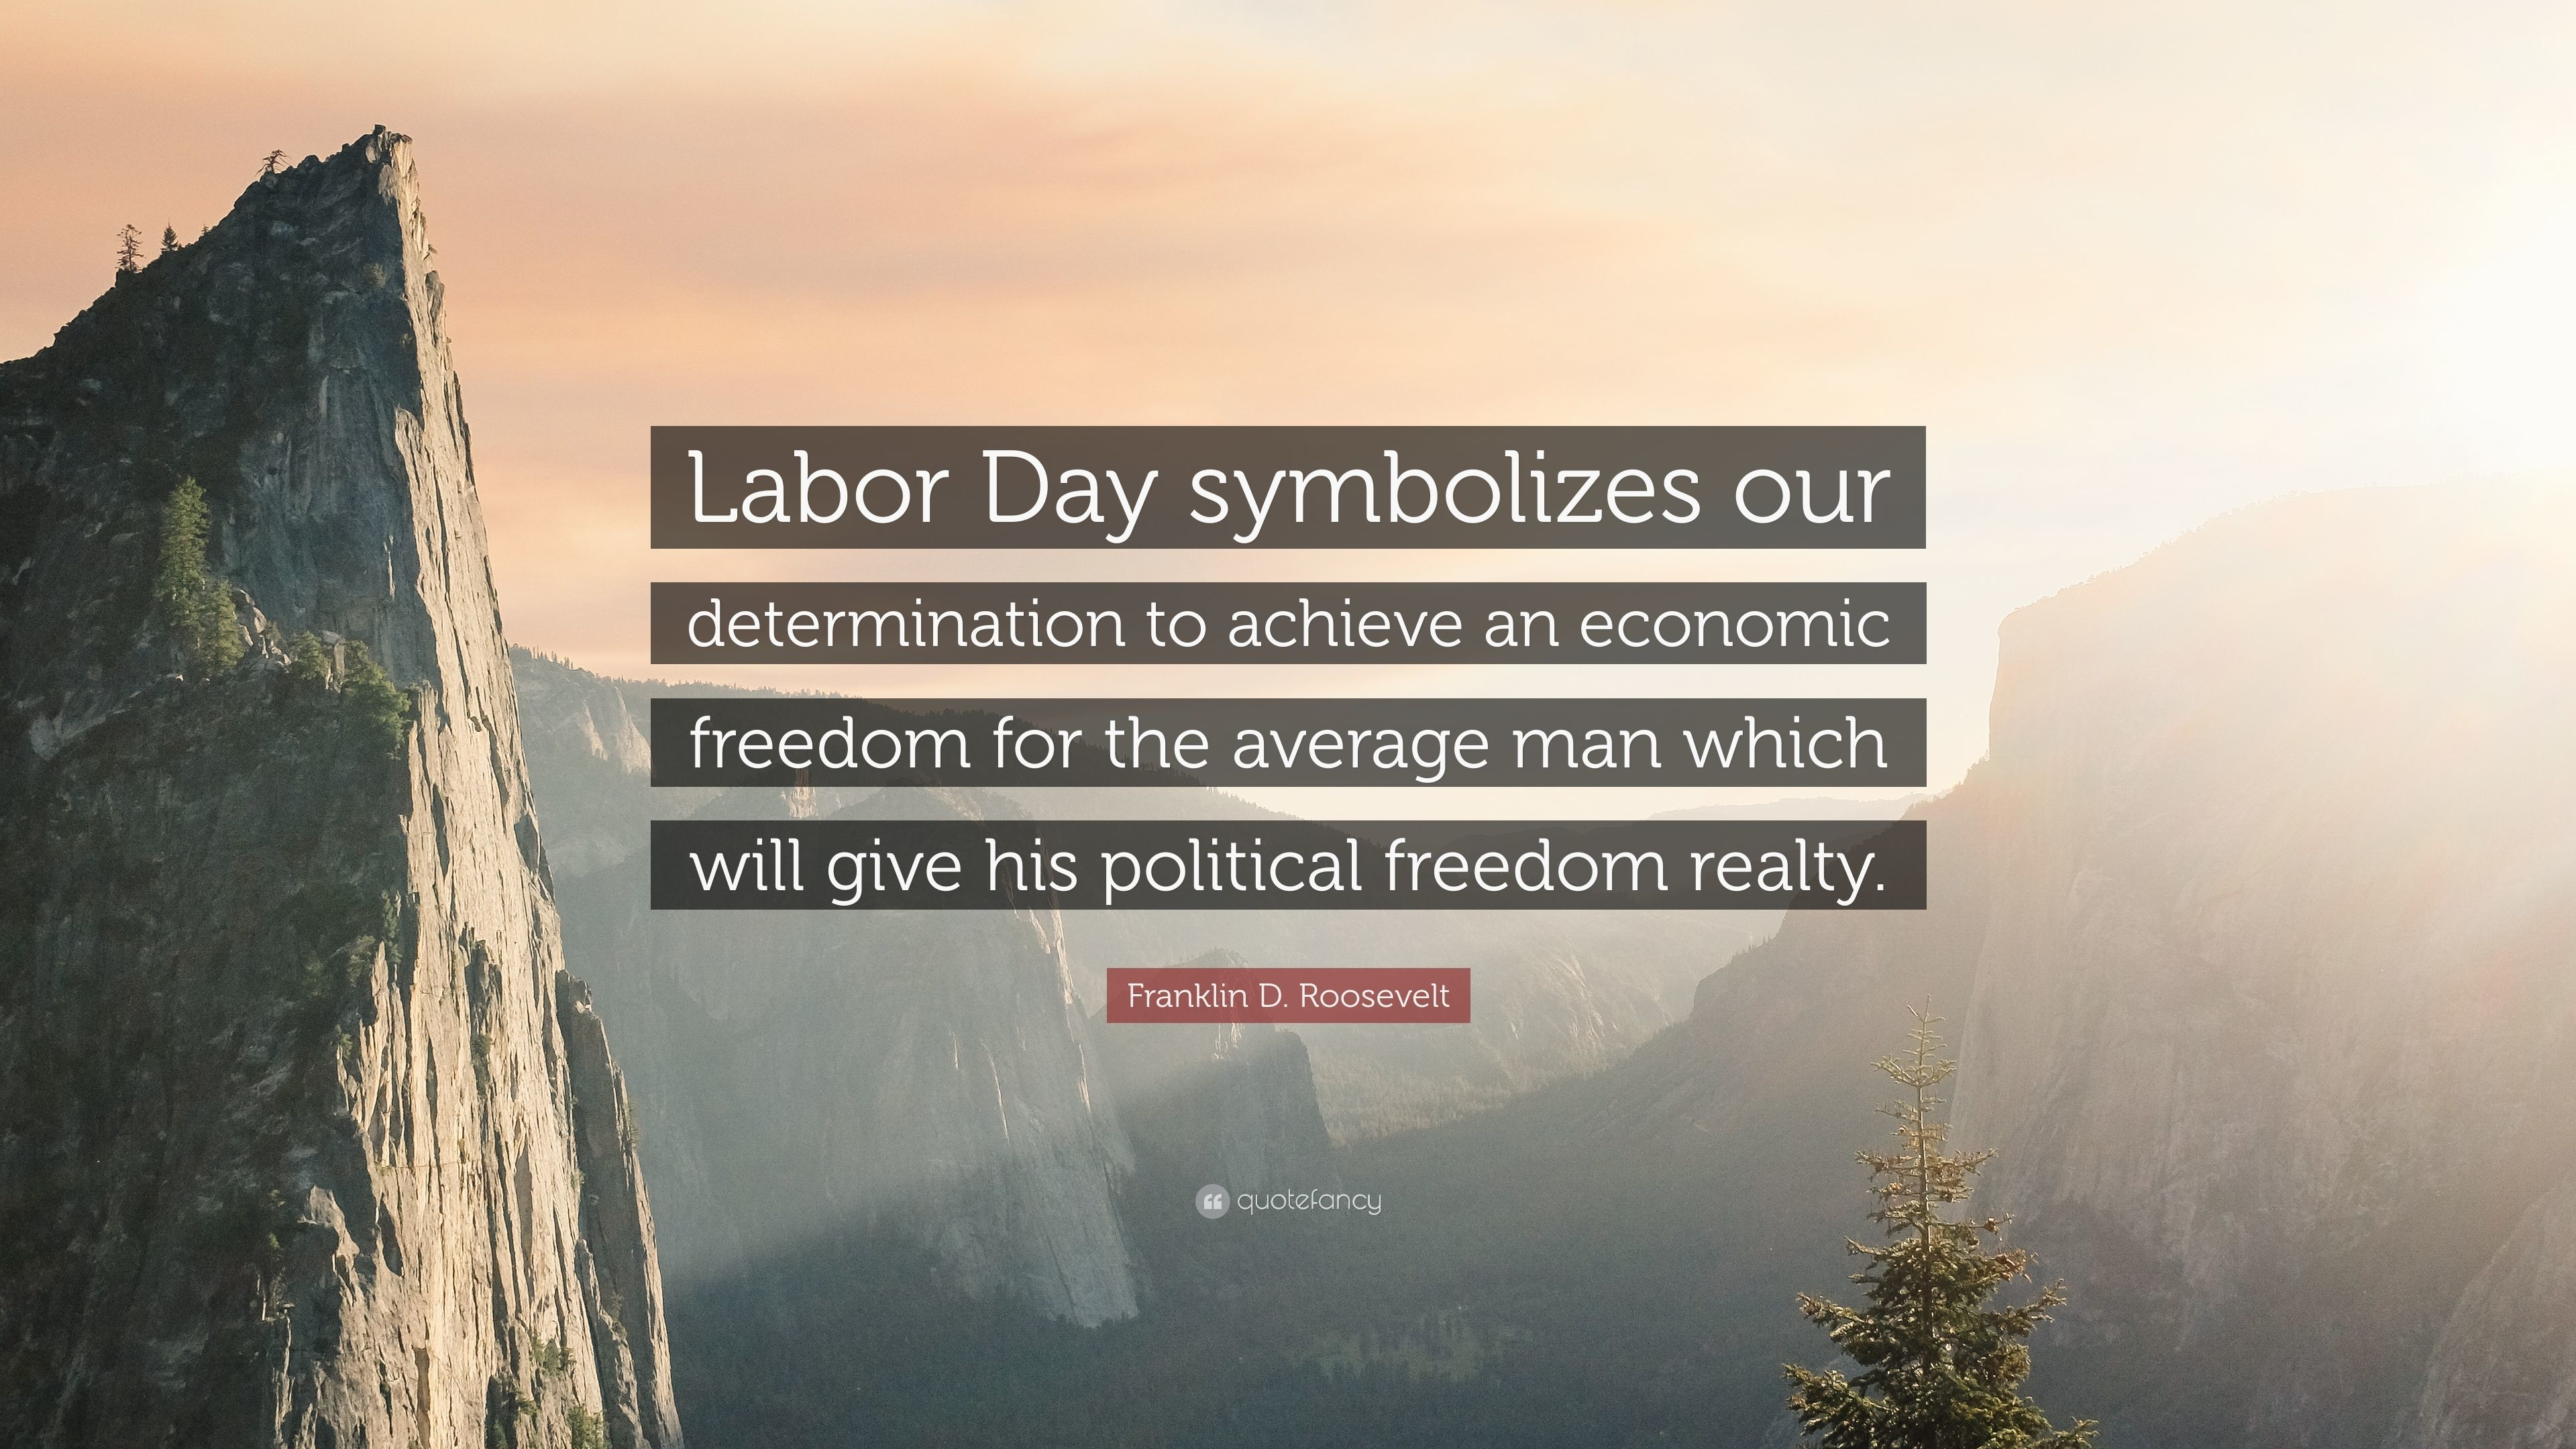 3840x2160 Free Labor Day Wallpapers - Wallpaper Cave